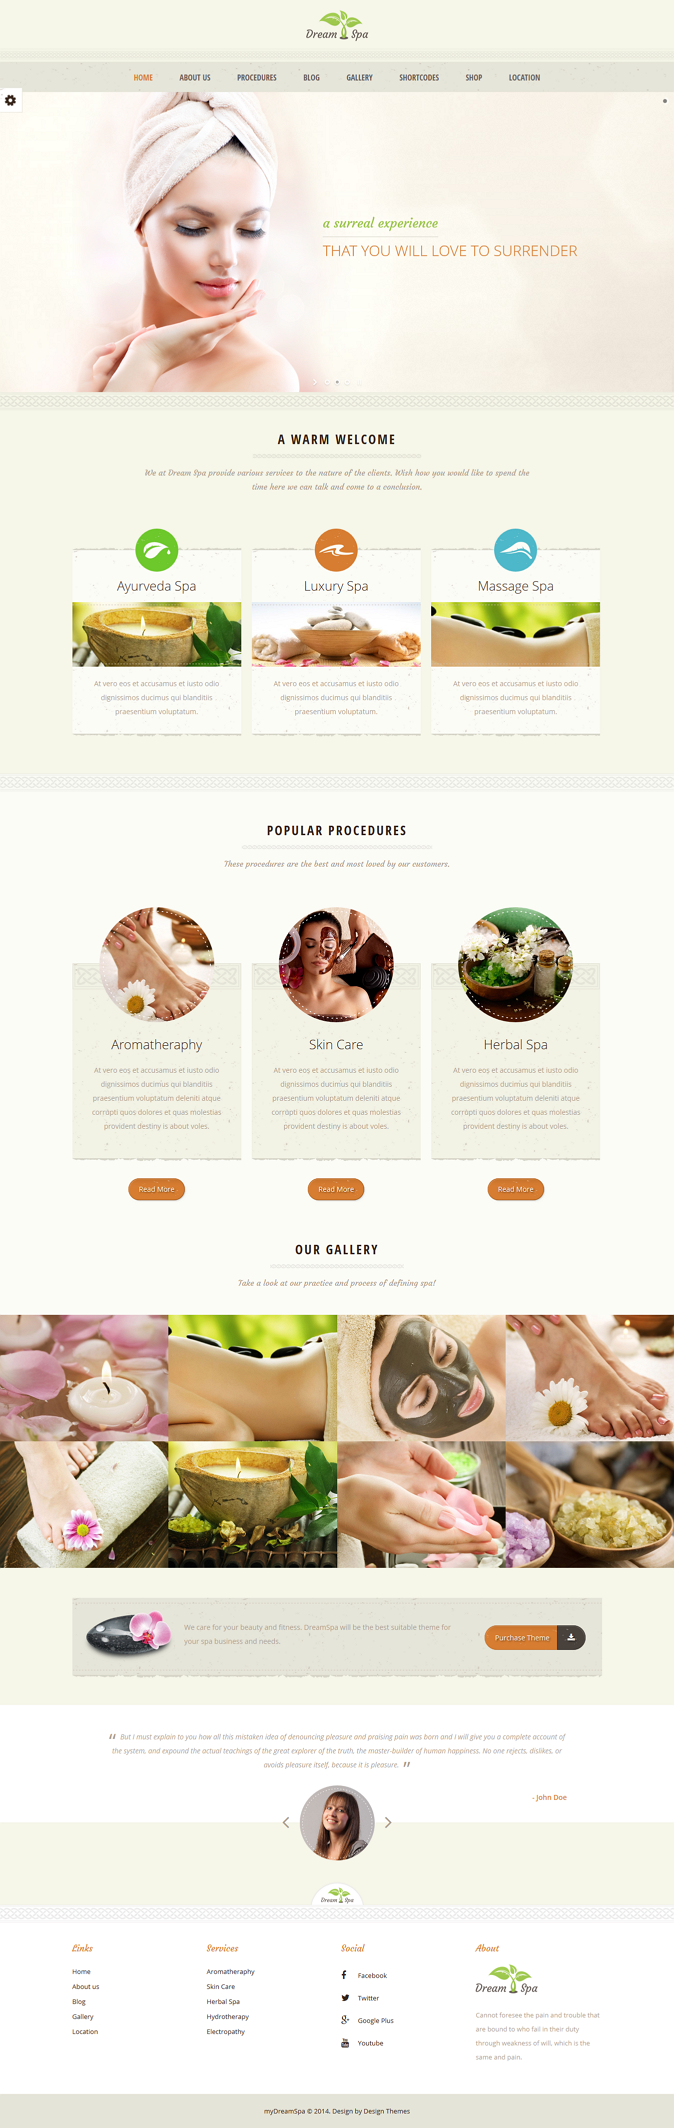 Dream Spa is a versatile health care business theme suitable for spa, therapy, massage, yoga, we ...